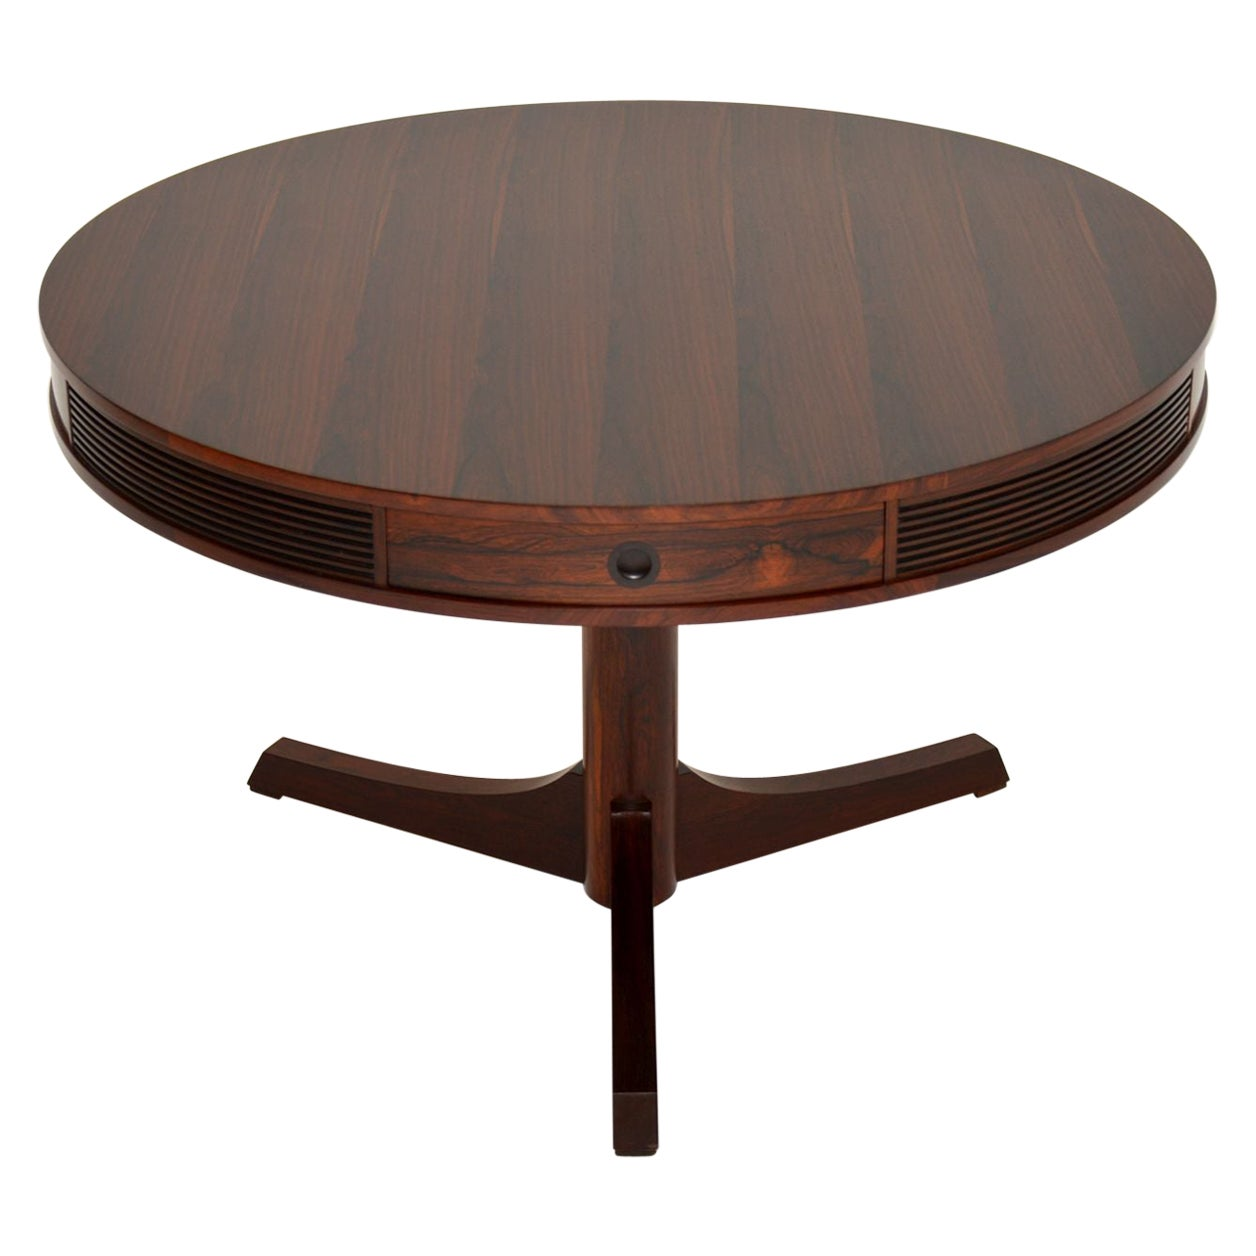 Vintage Dining Table by Robert Heritage for Archie Shine